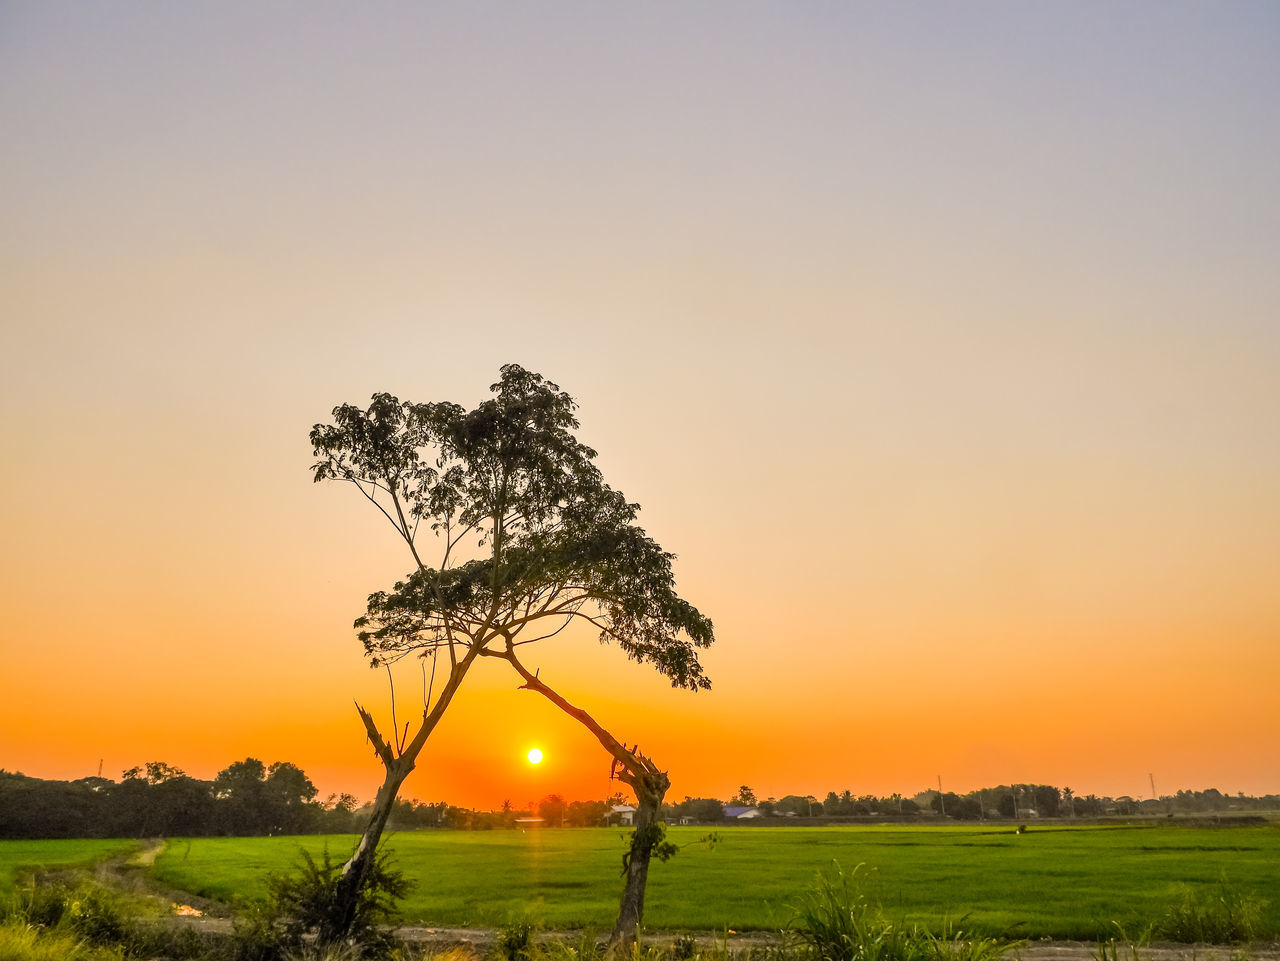 Beauty Beauty In Nature Field Gold Colored Landscape Nature No People Orange Sky Orenge Sky Peace Plain Rice Field Scenics Sky Sunset Tranquil Scene Tranquility Tree